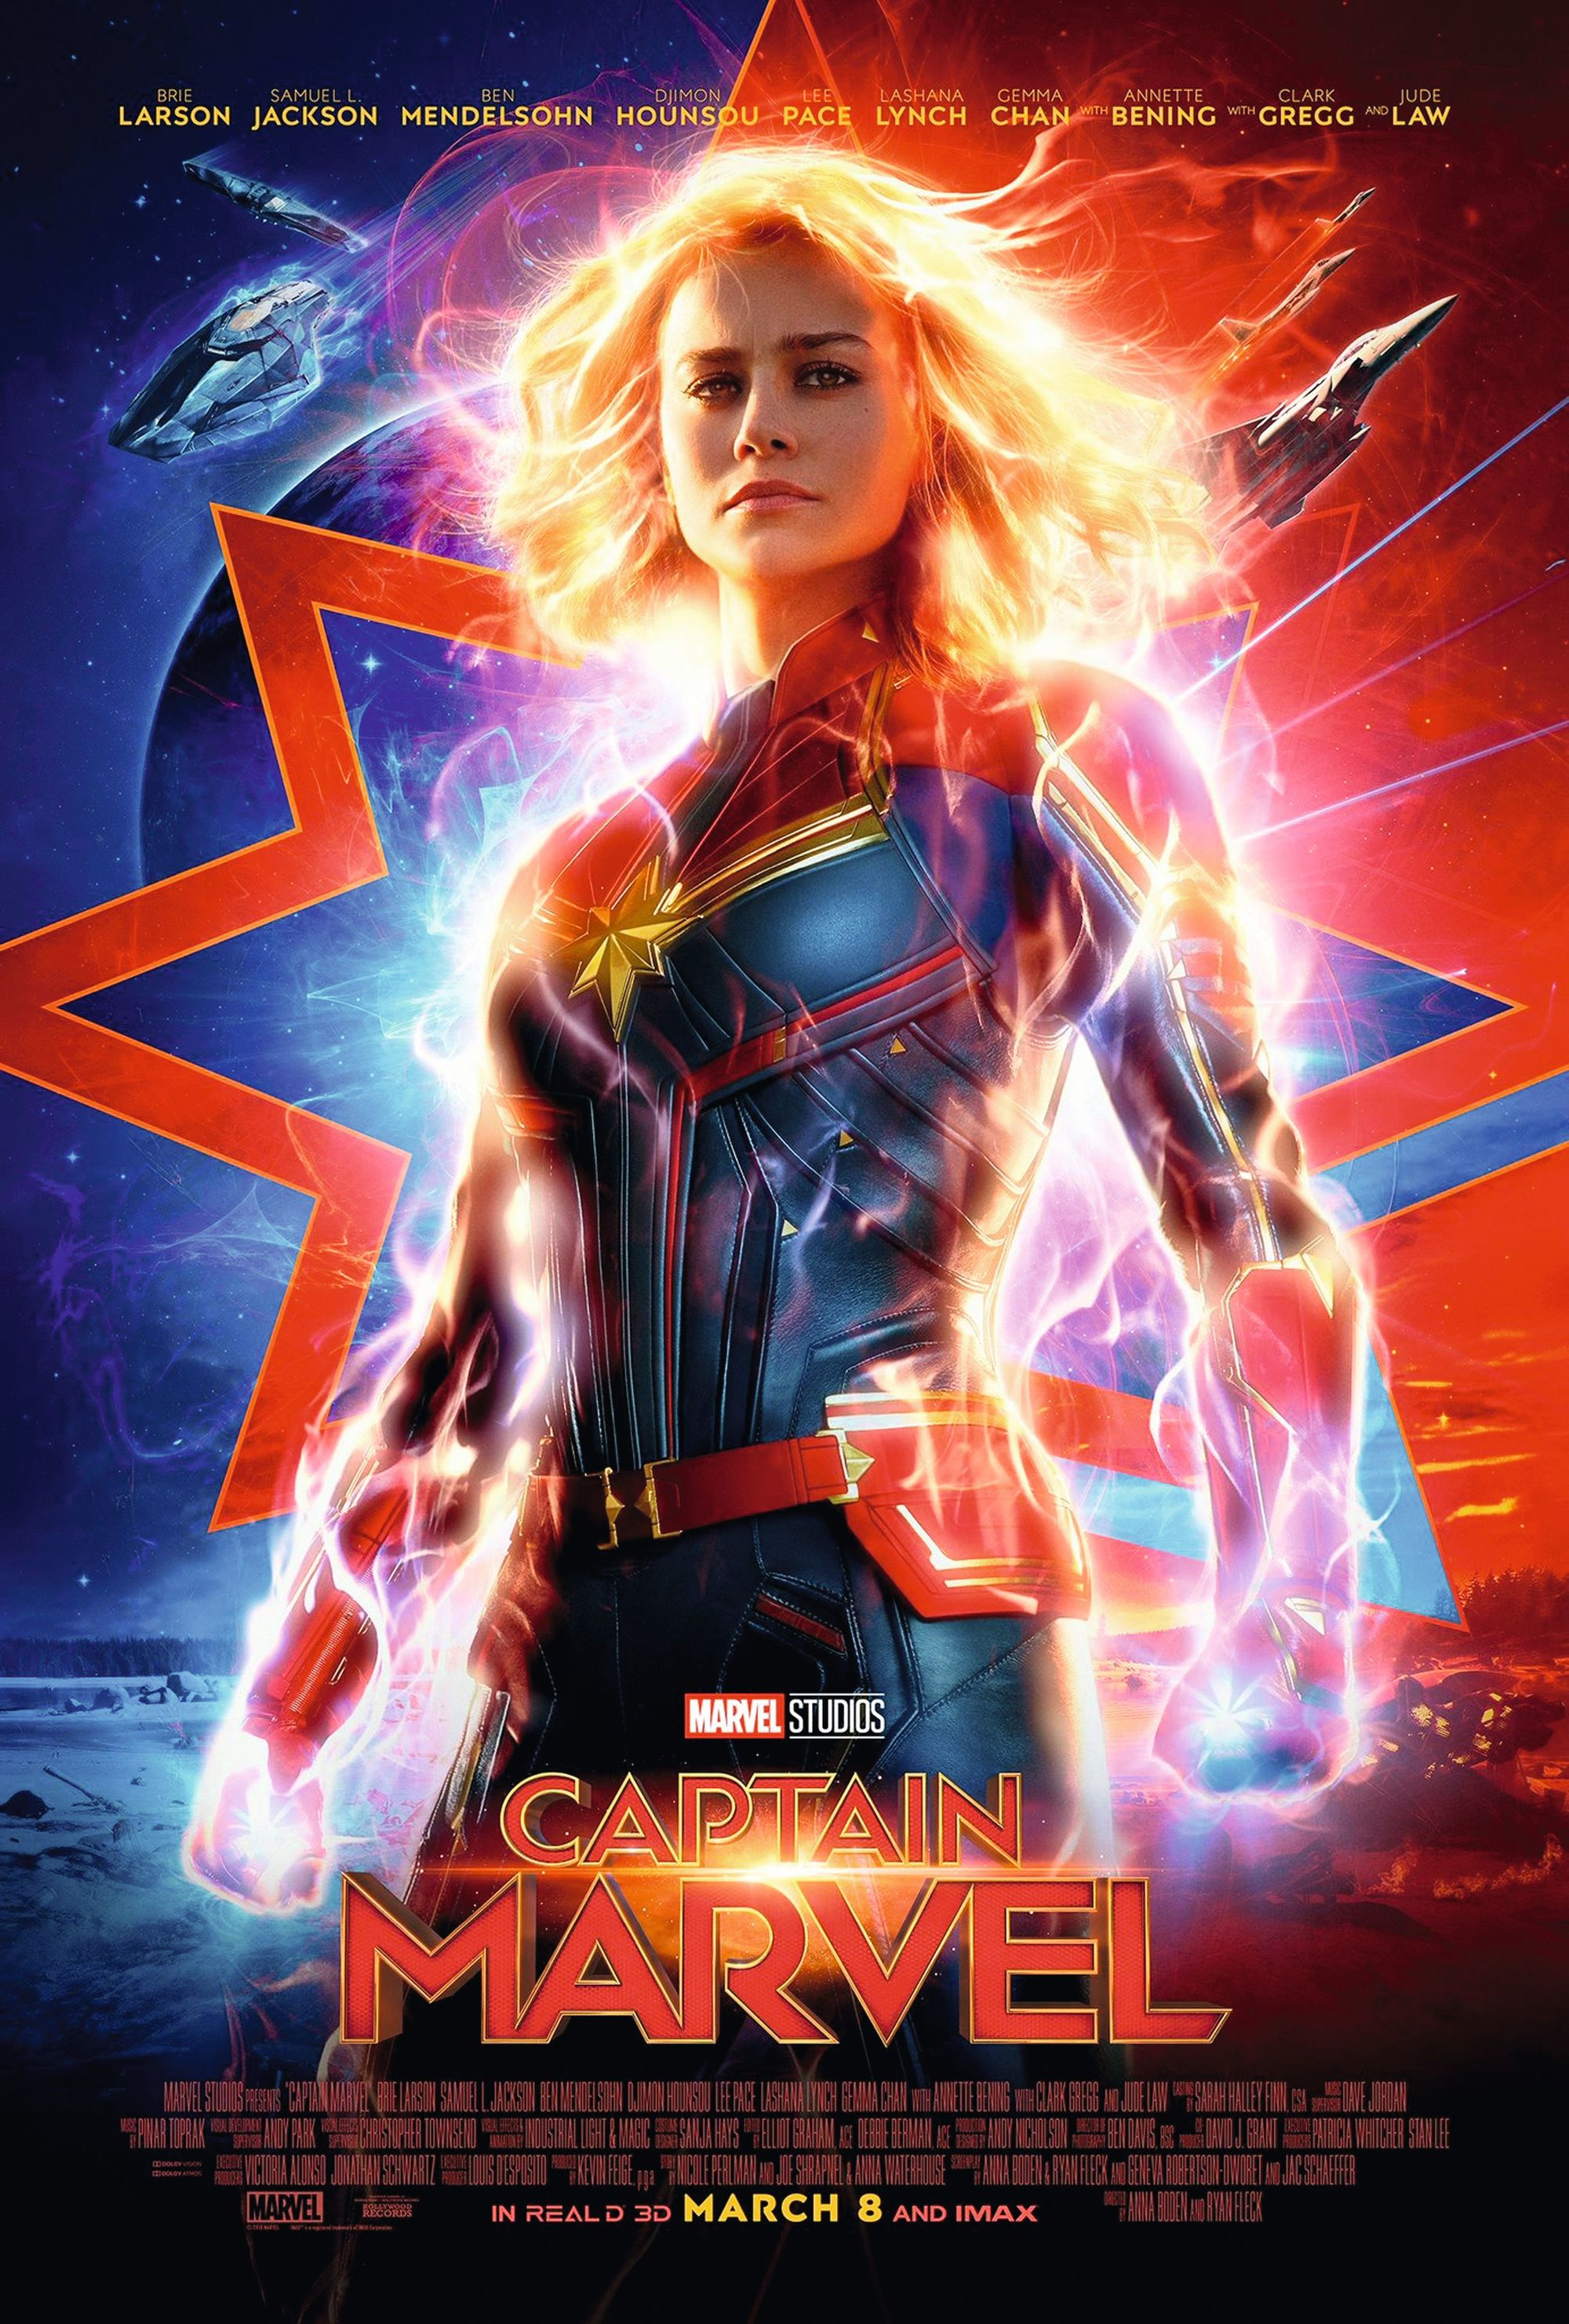 Captain Marvel, by Anna Boden and Ryan Fleck, 2019